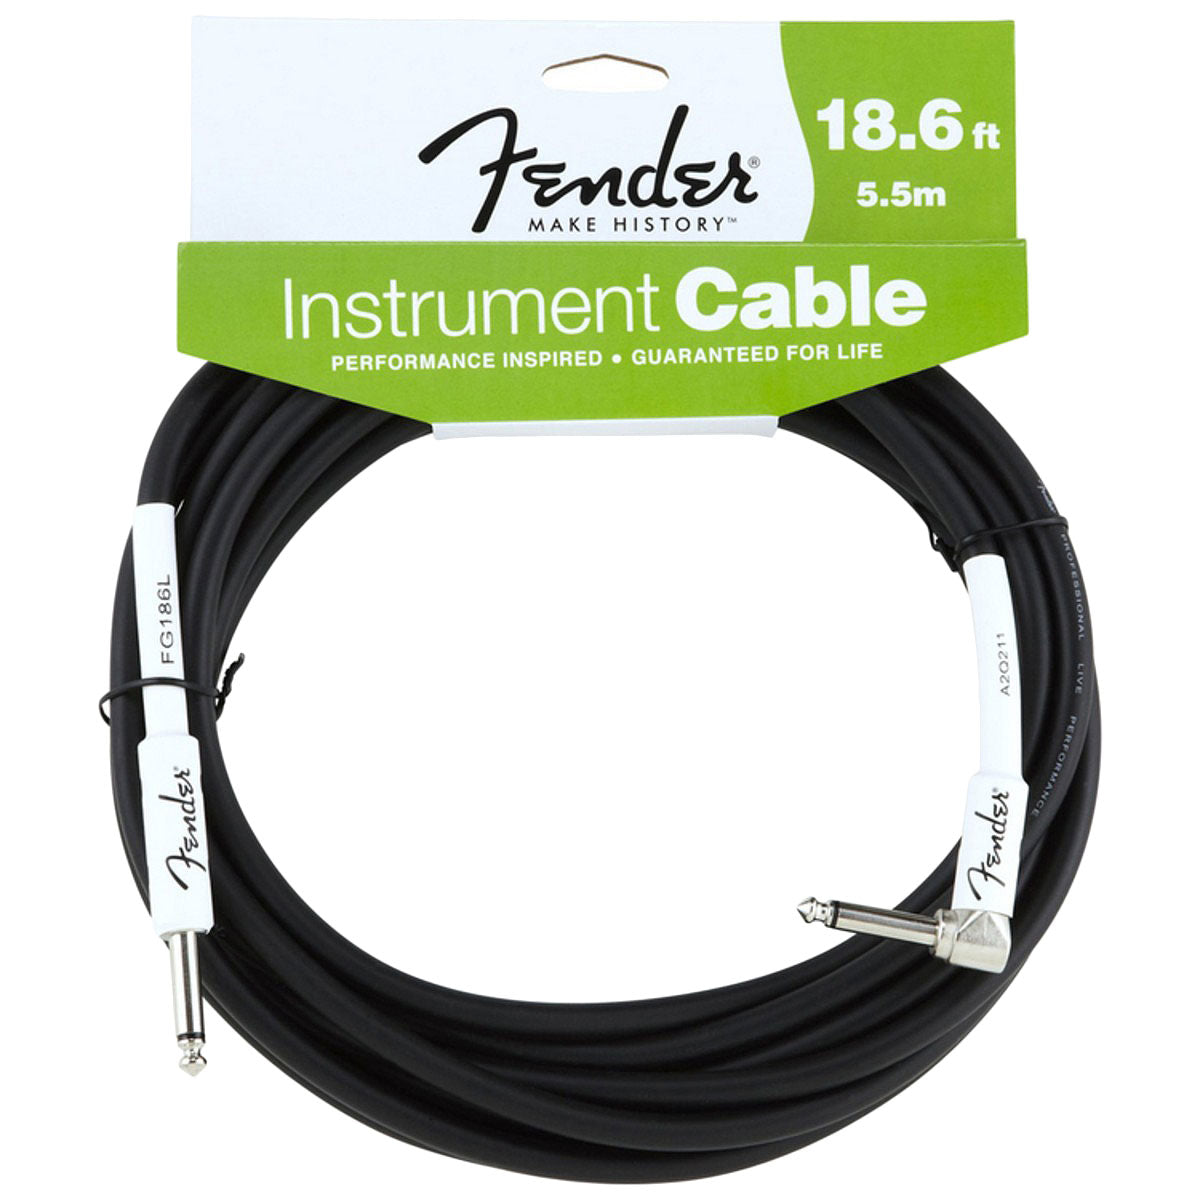 Fender 18.6ft Instrument Cable - Black - Angled | Lucky Fret Music Co.